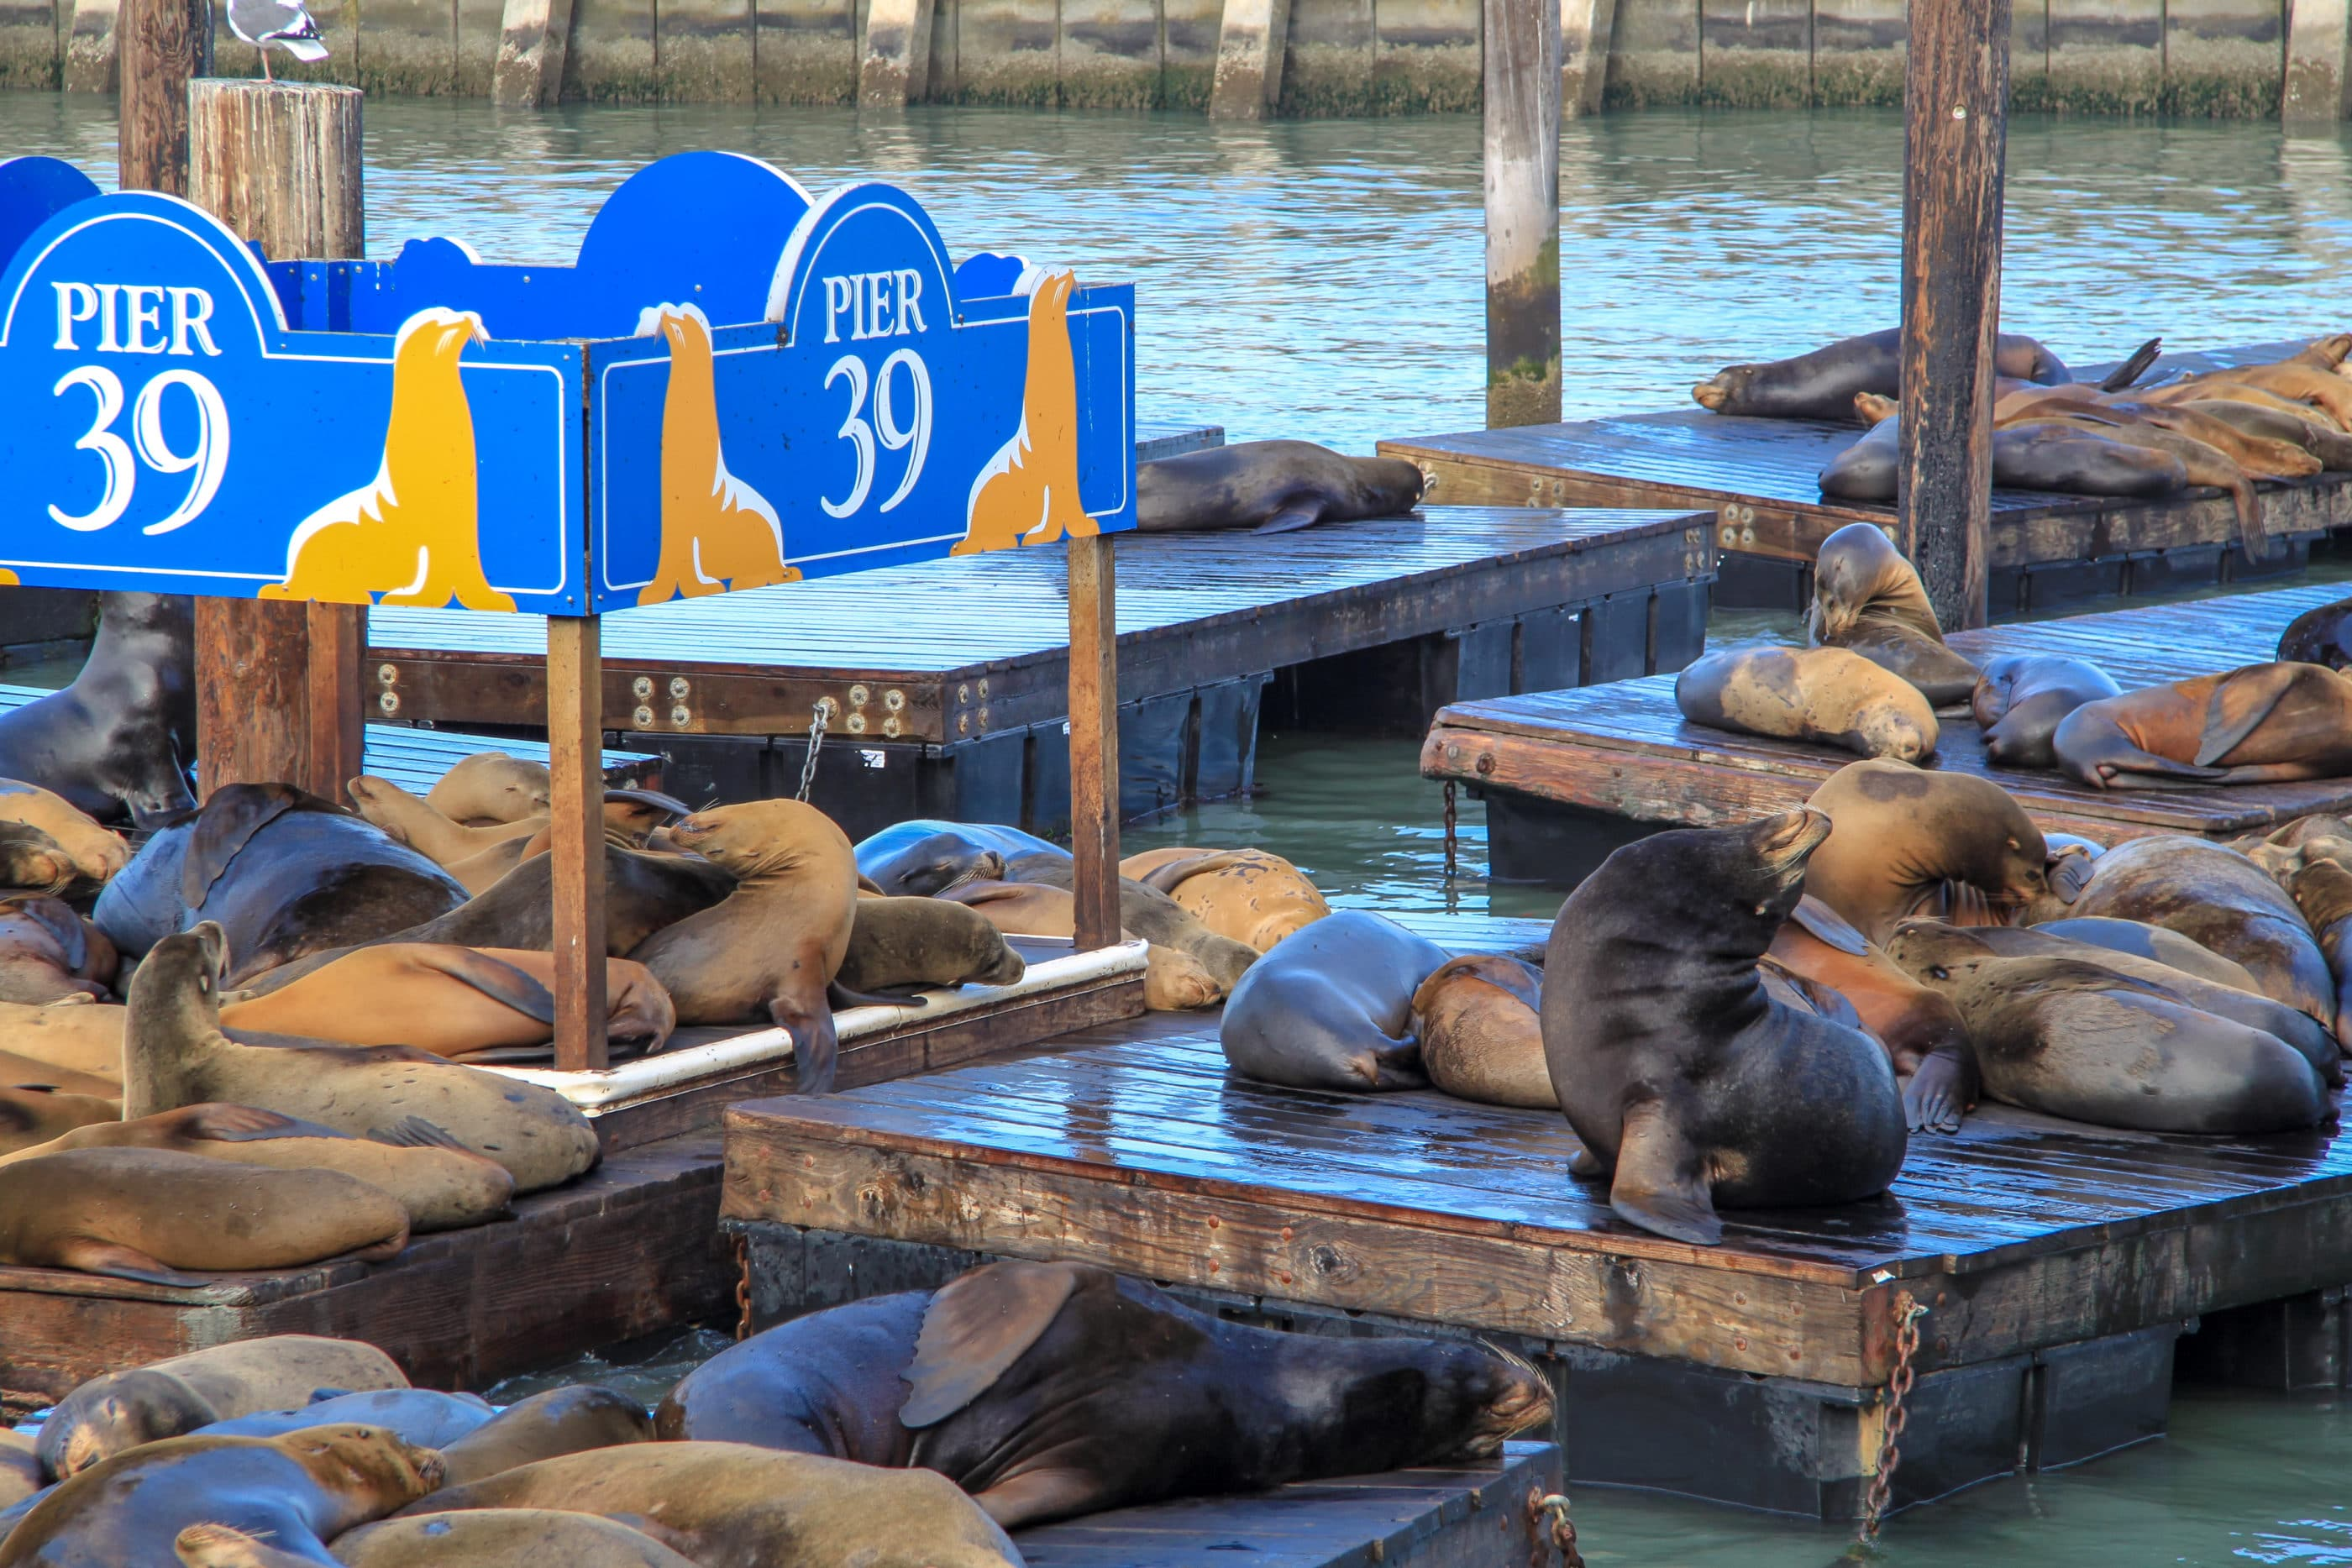 Things to Do in San Francisco: Pier 39